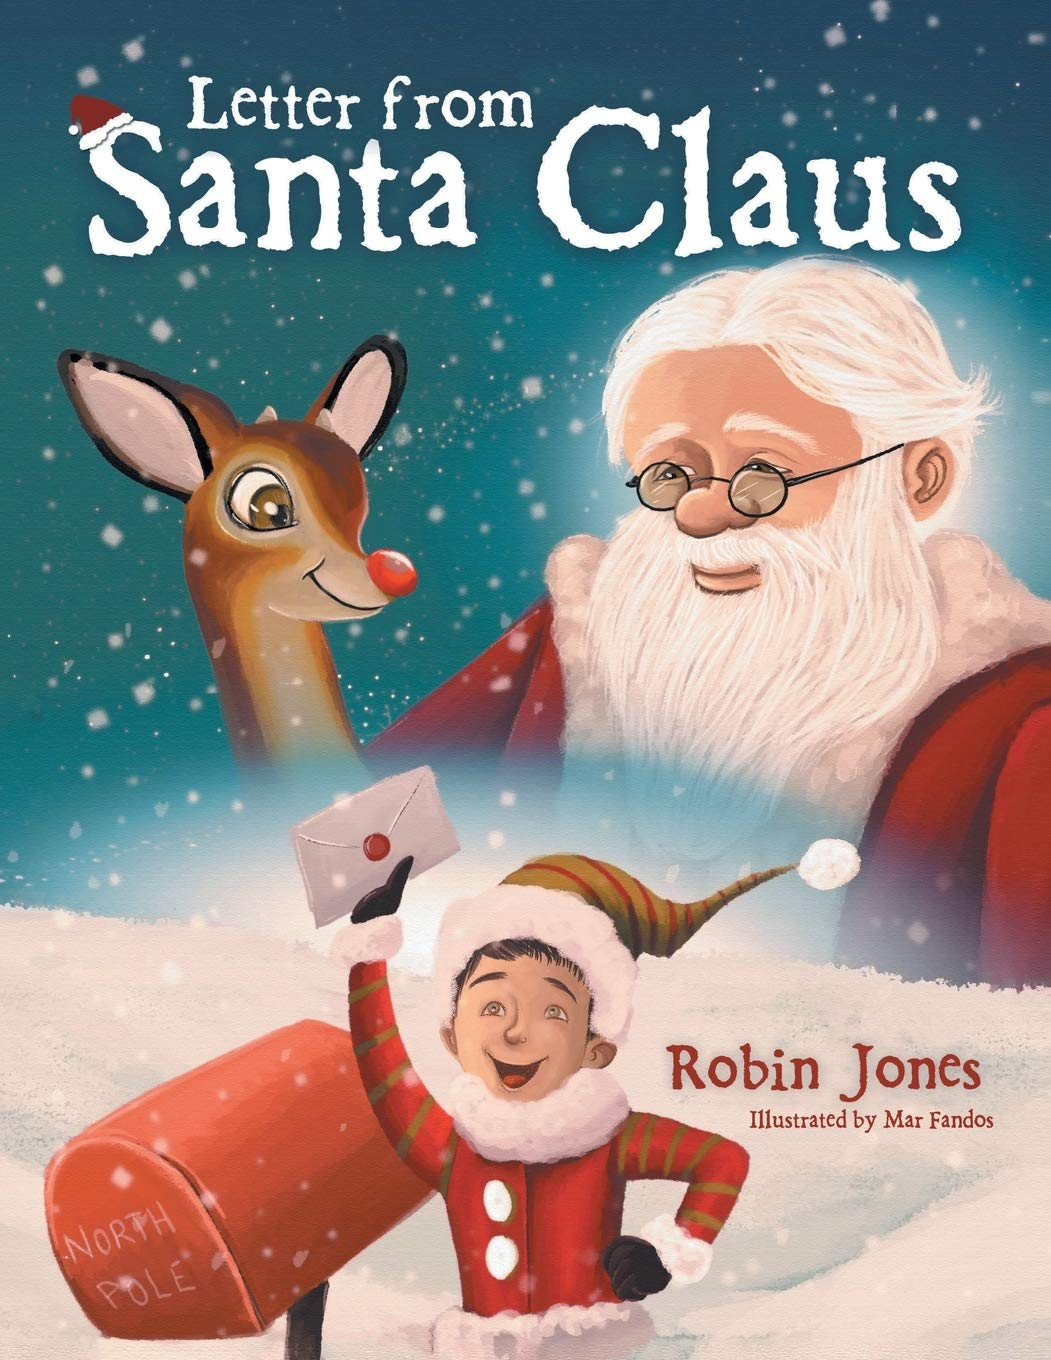 Greetings from the North Pole: A Letter from Santa Claus by Robin Jones Now on Amazon